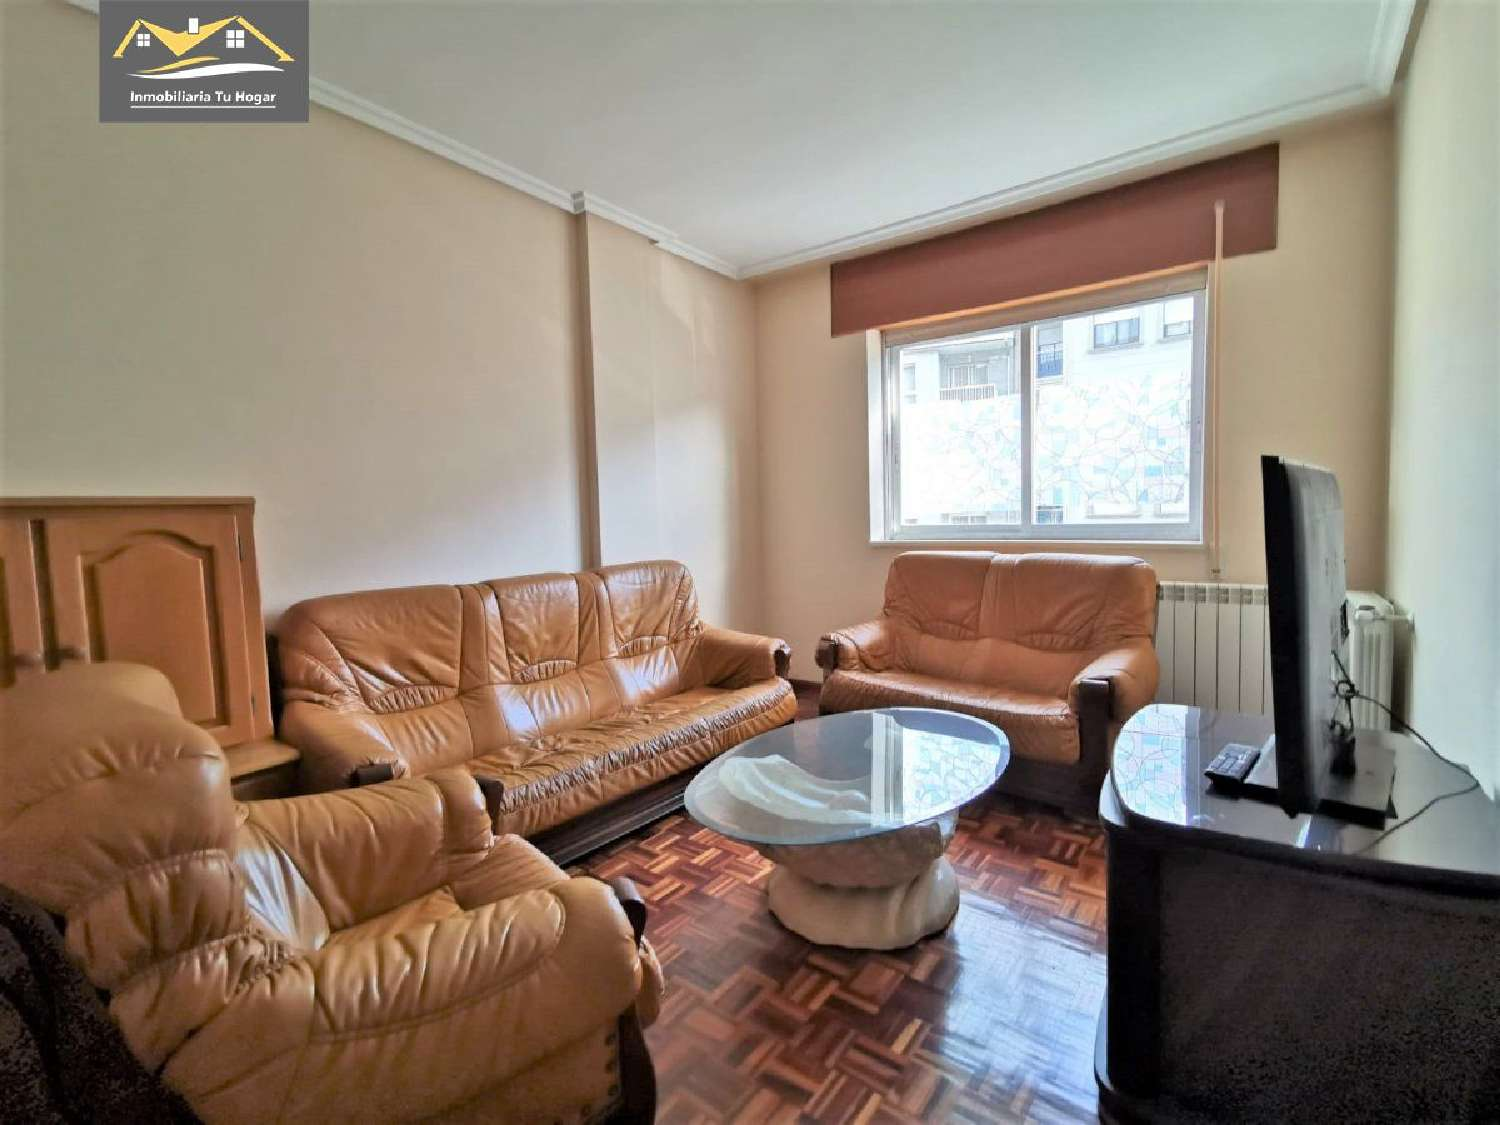 couto ourense appartement foto 4656782